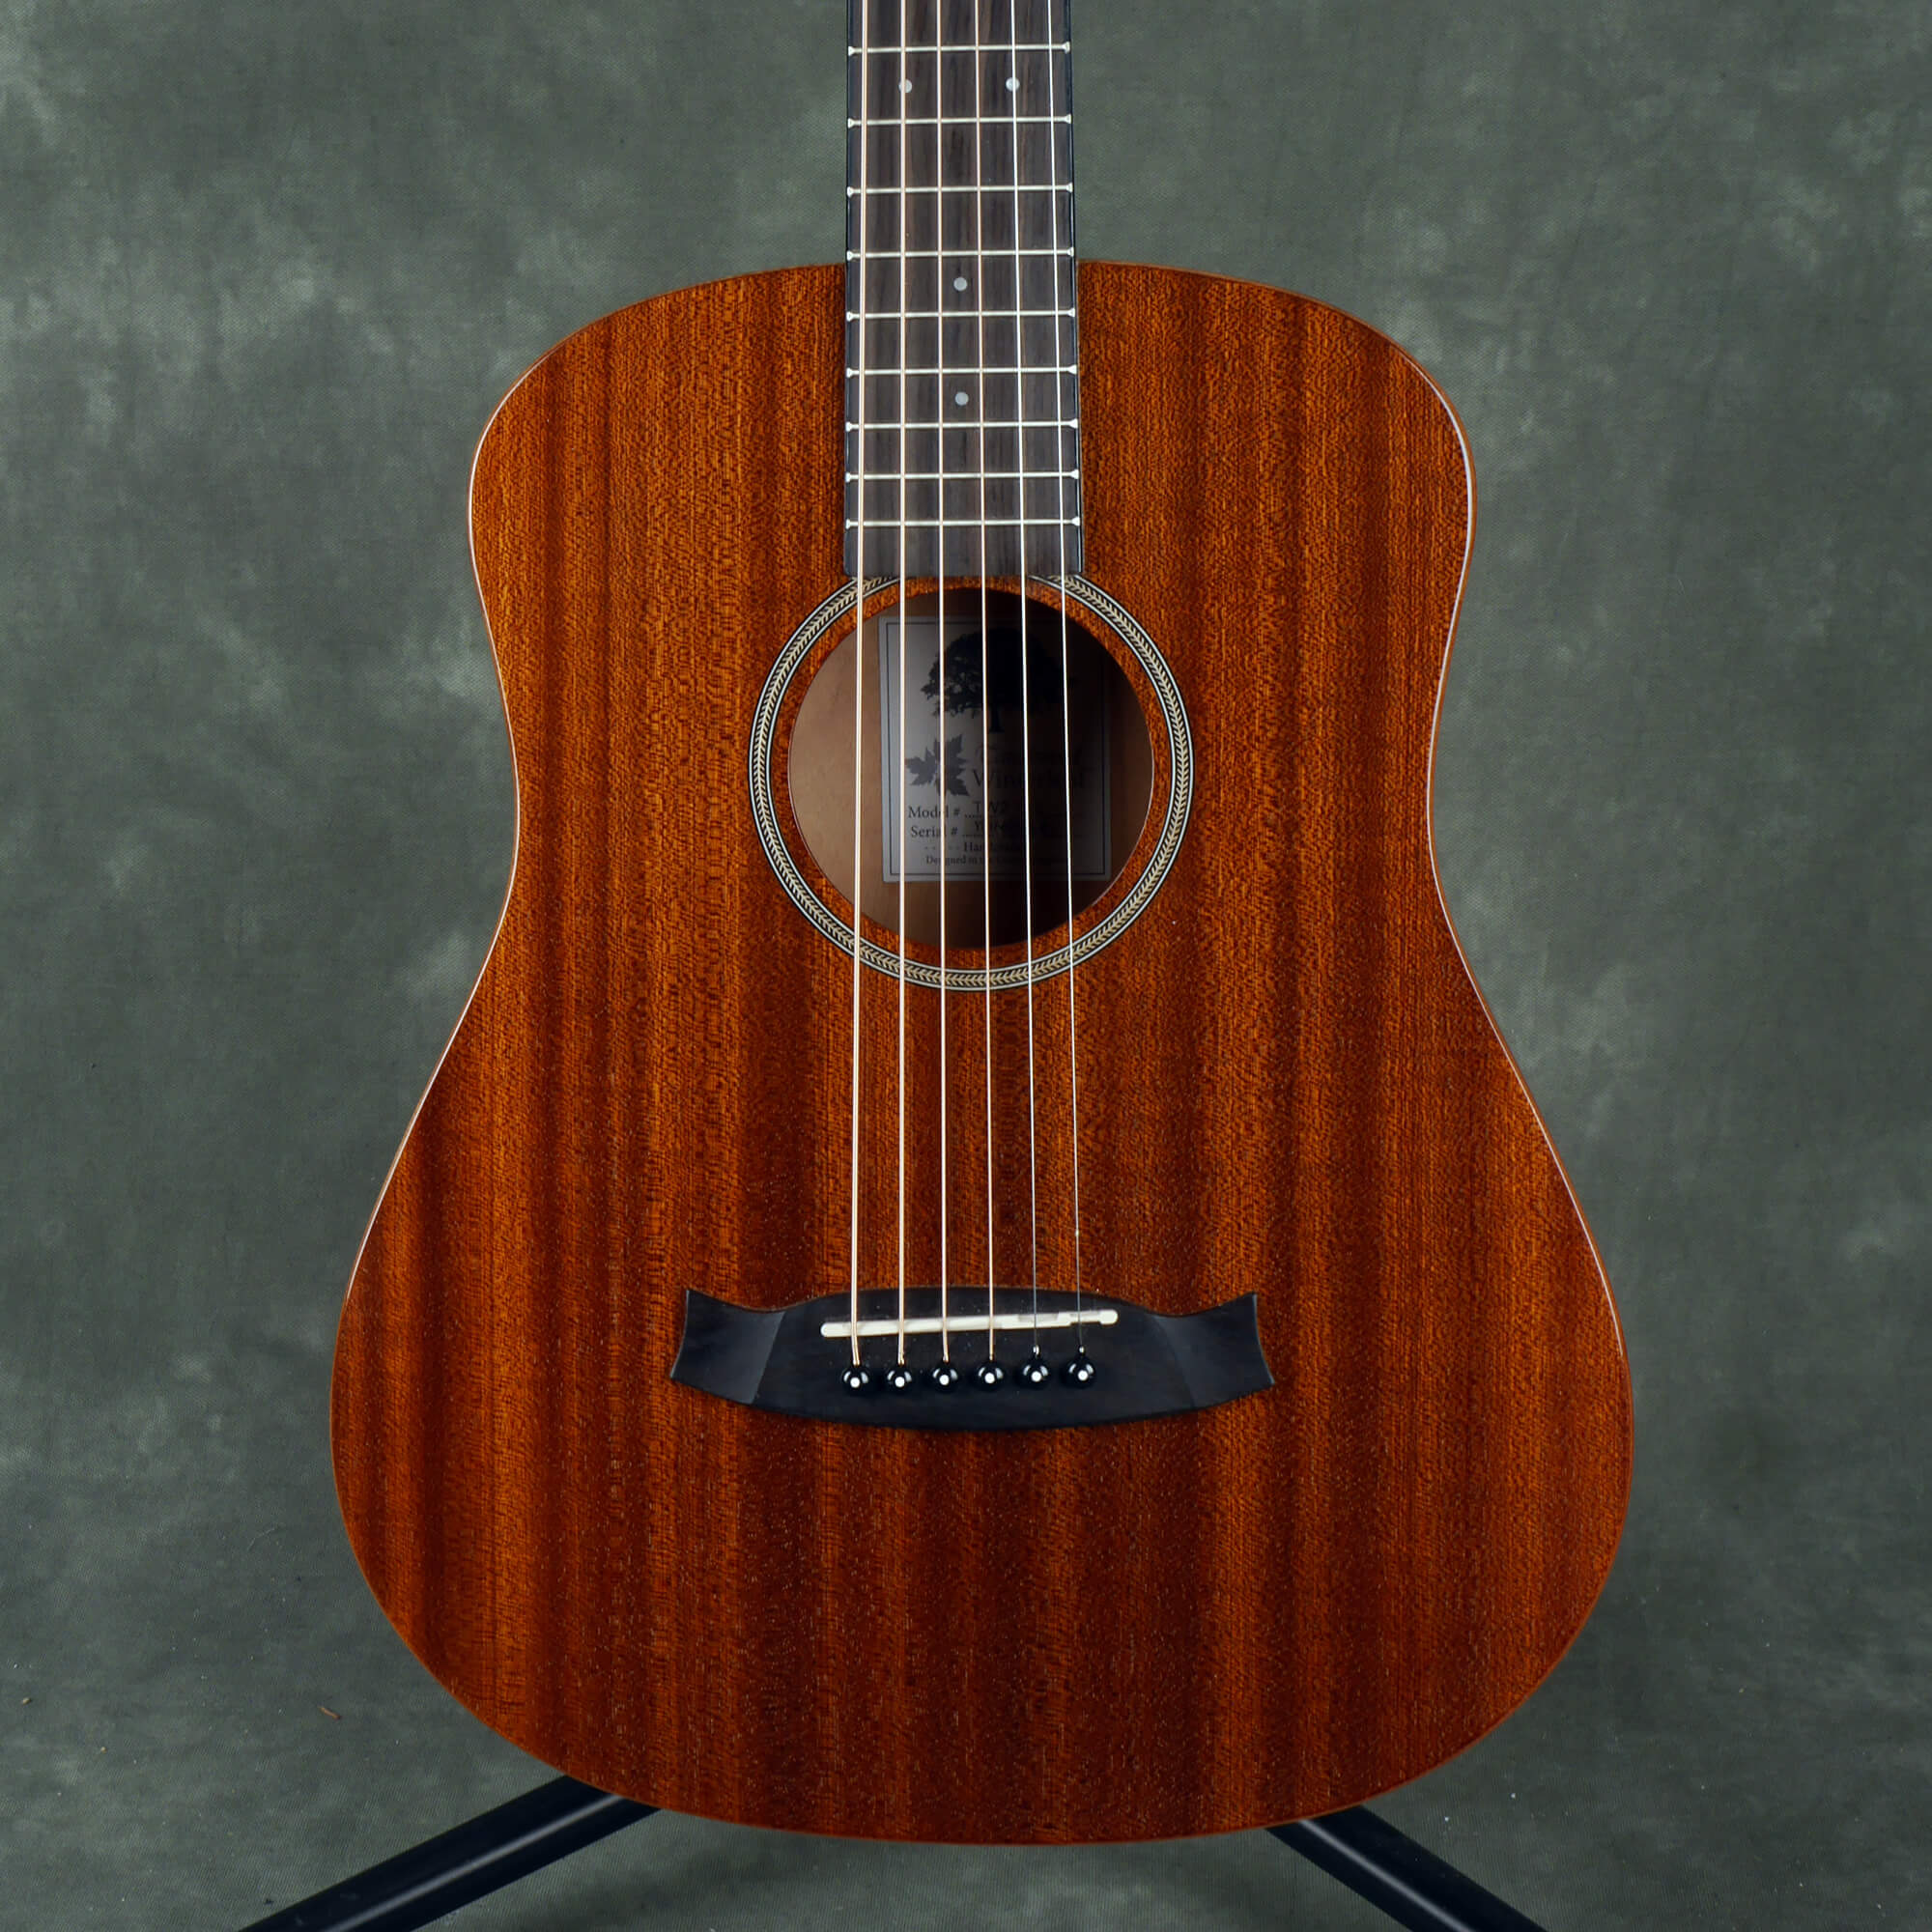 Tanglewood TW2 TXE Electro-Acoustic Guitar - 2nd Hand